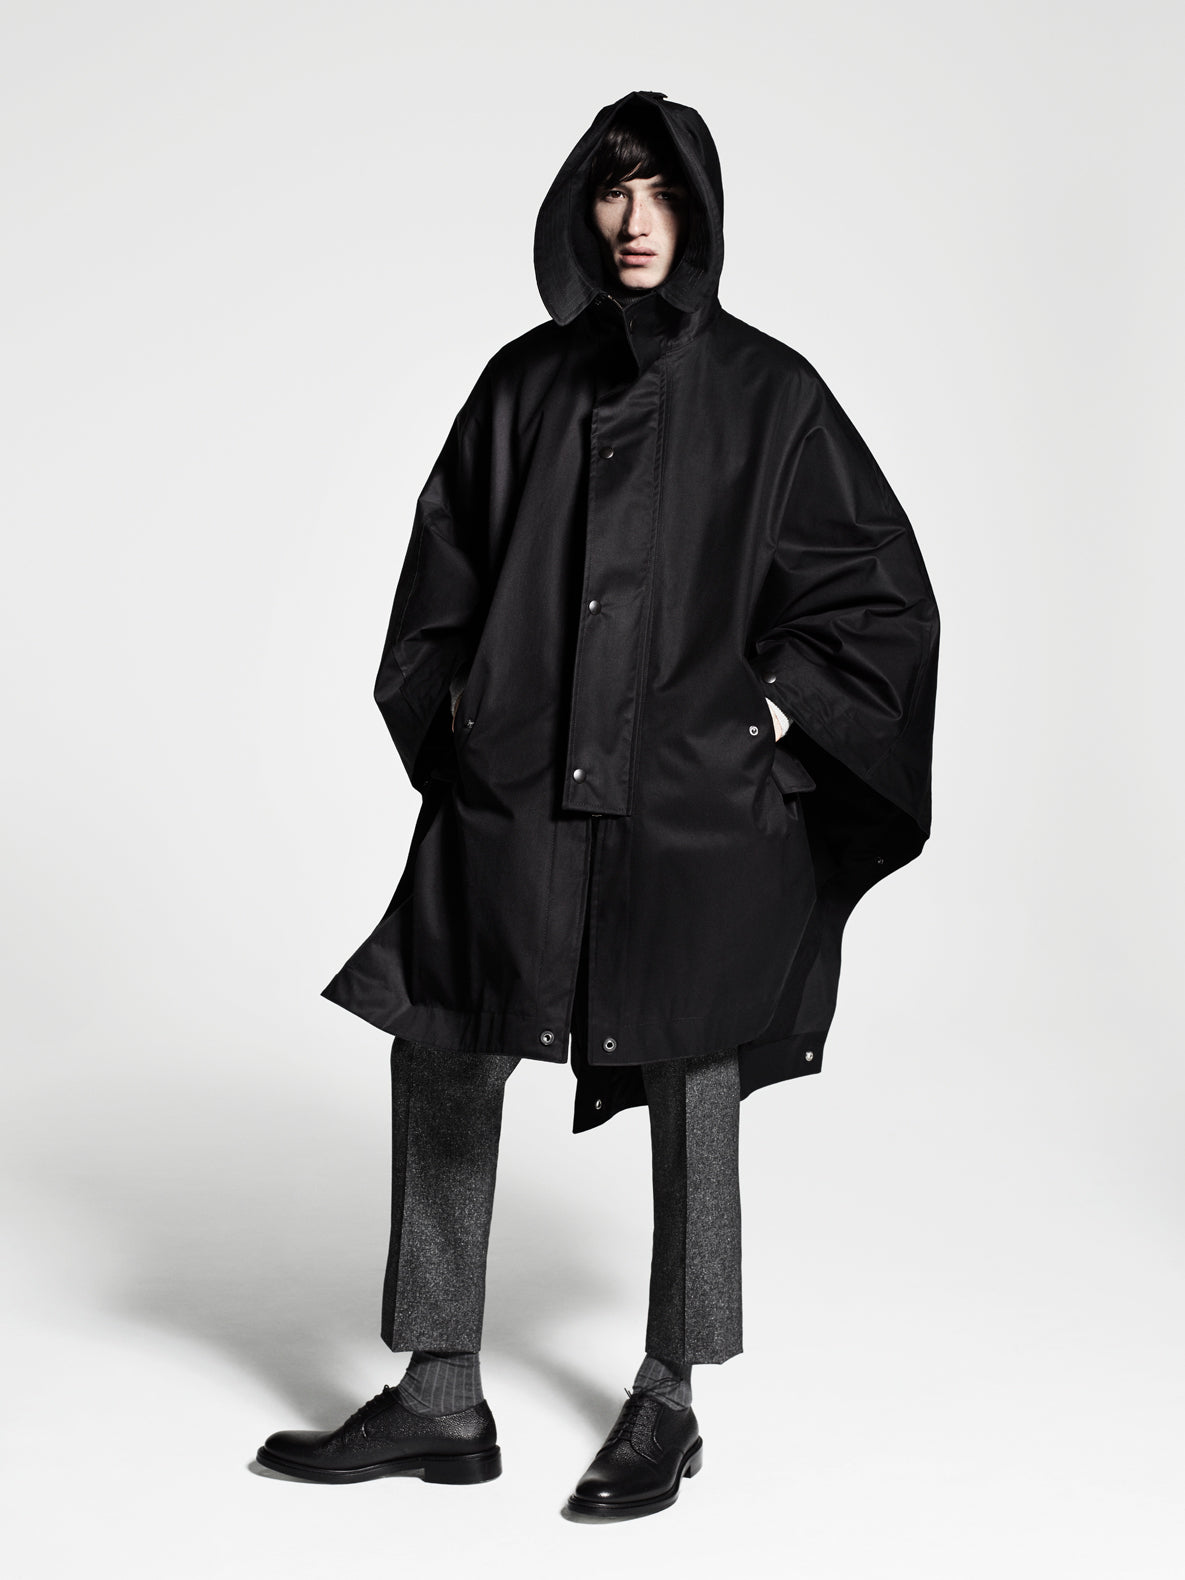 Cape Grenfell Cloth Black